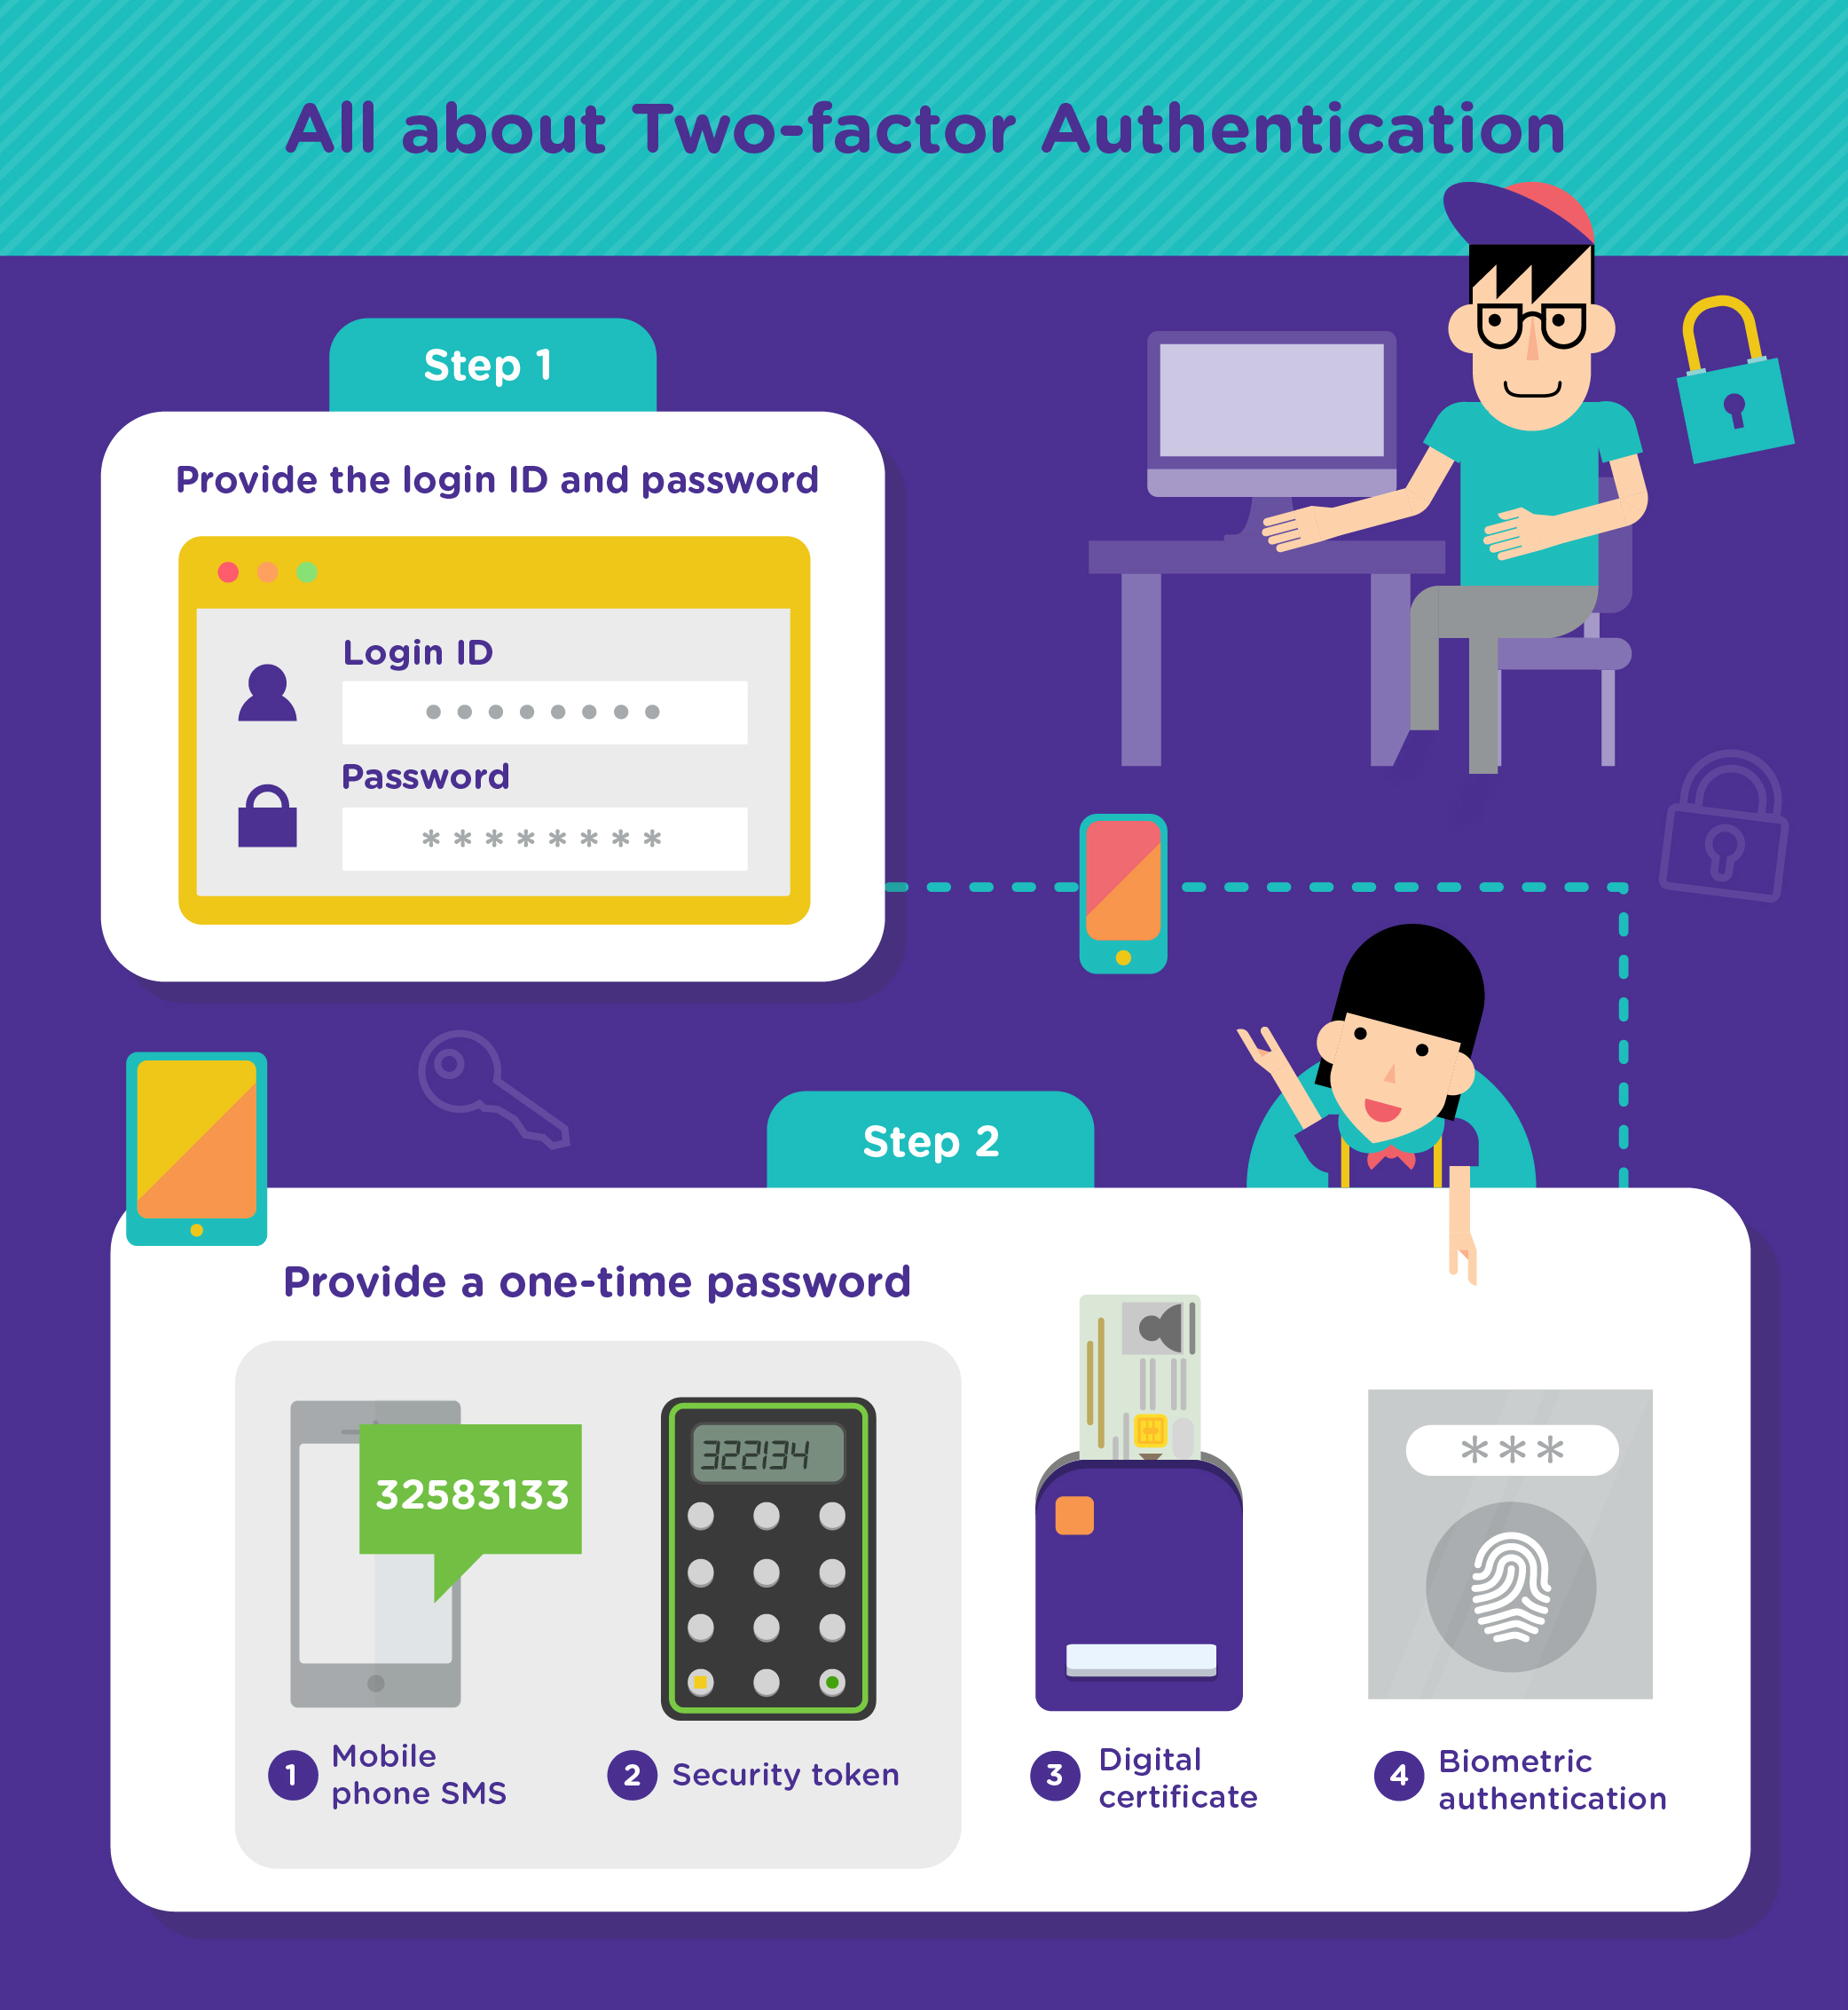 two-factor authentication, 2FA, login ID and password, one-time password, mobile phone sms, security token, digital certificate, biometric authentication